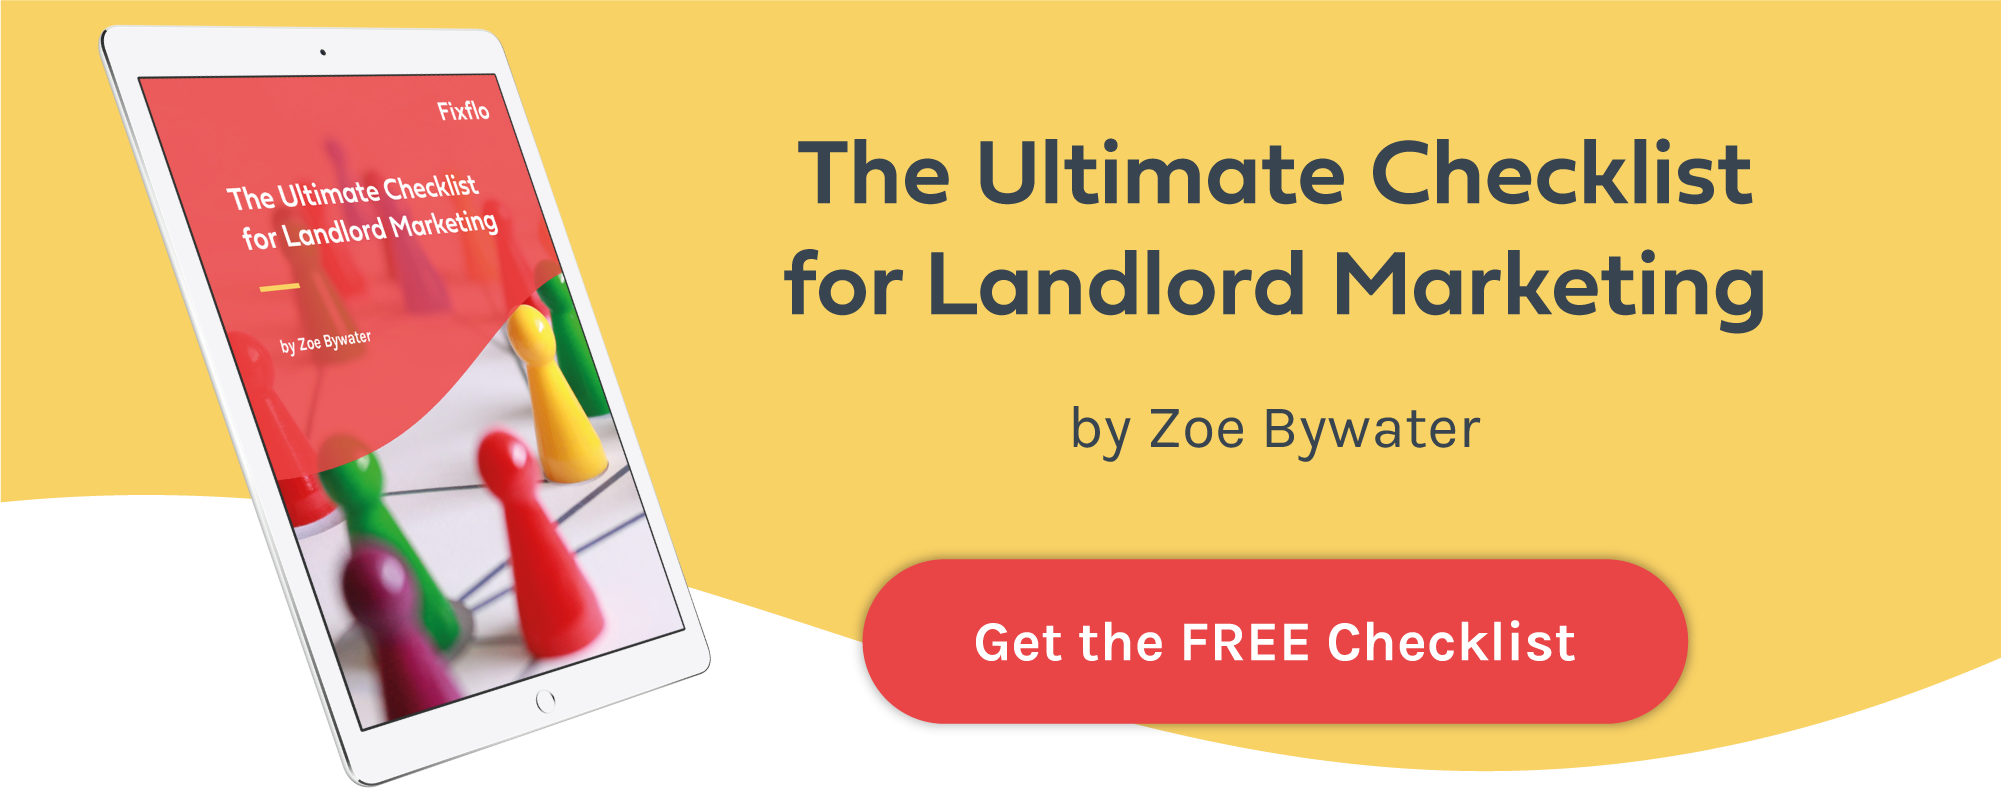 Ultimate Checklist for Landlord Marketing_Email